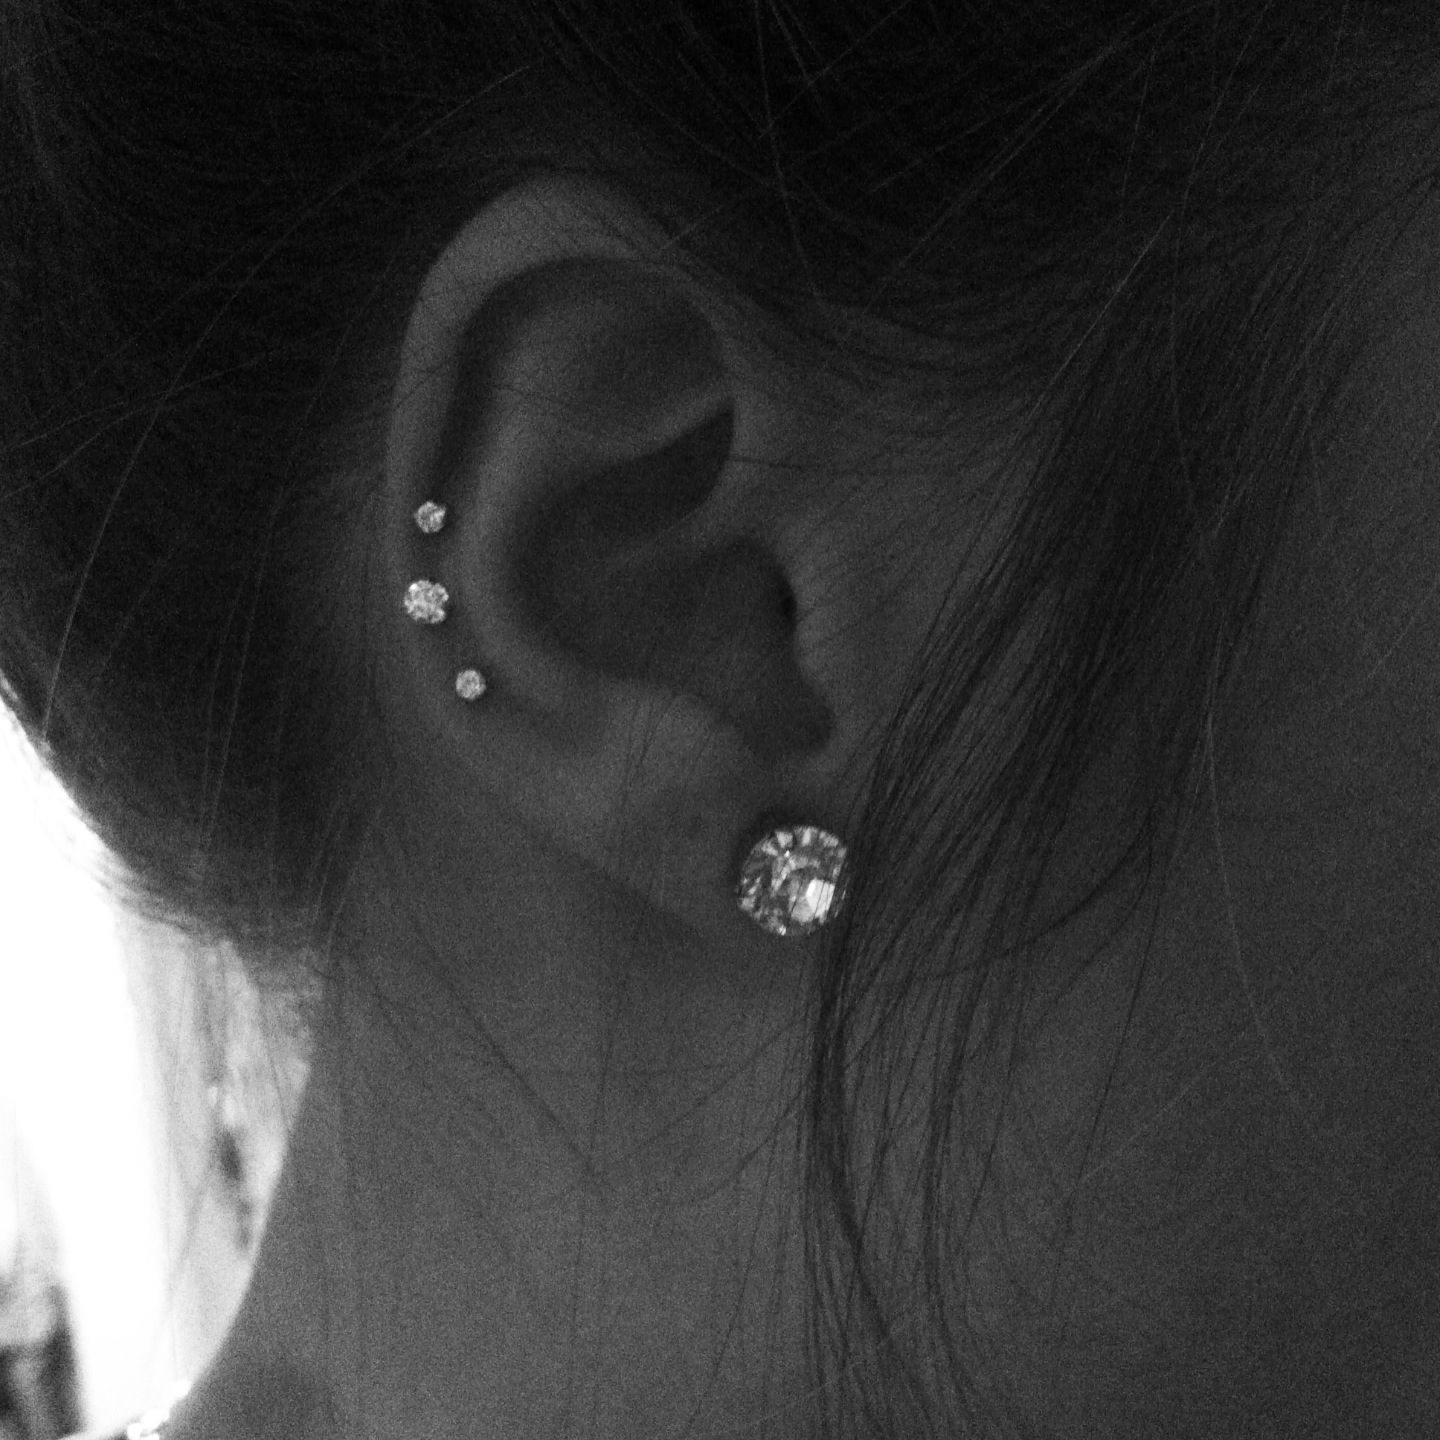 New piercing ideas  Looking for some new piercing ideas  Surprisingly me  Pinterest